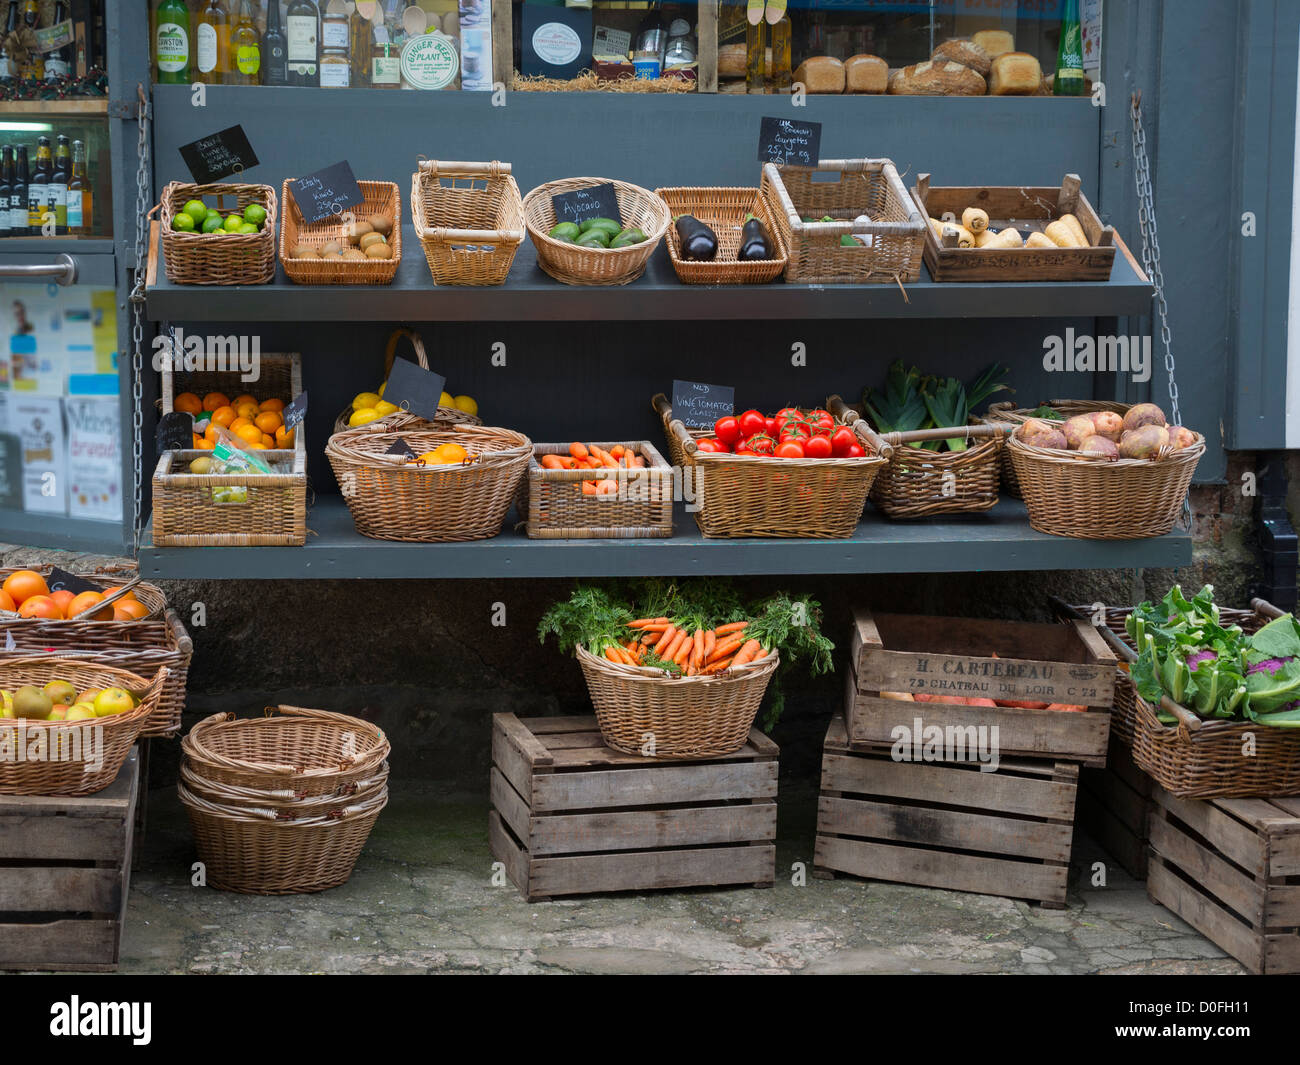 Greengrocer's display in St Ives, Cornwall - Stock Image